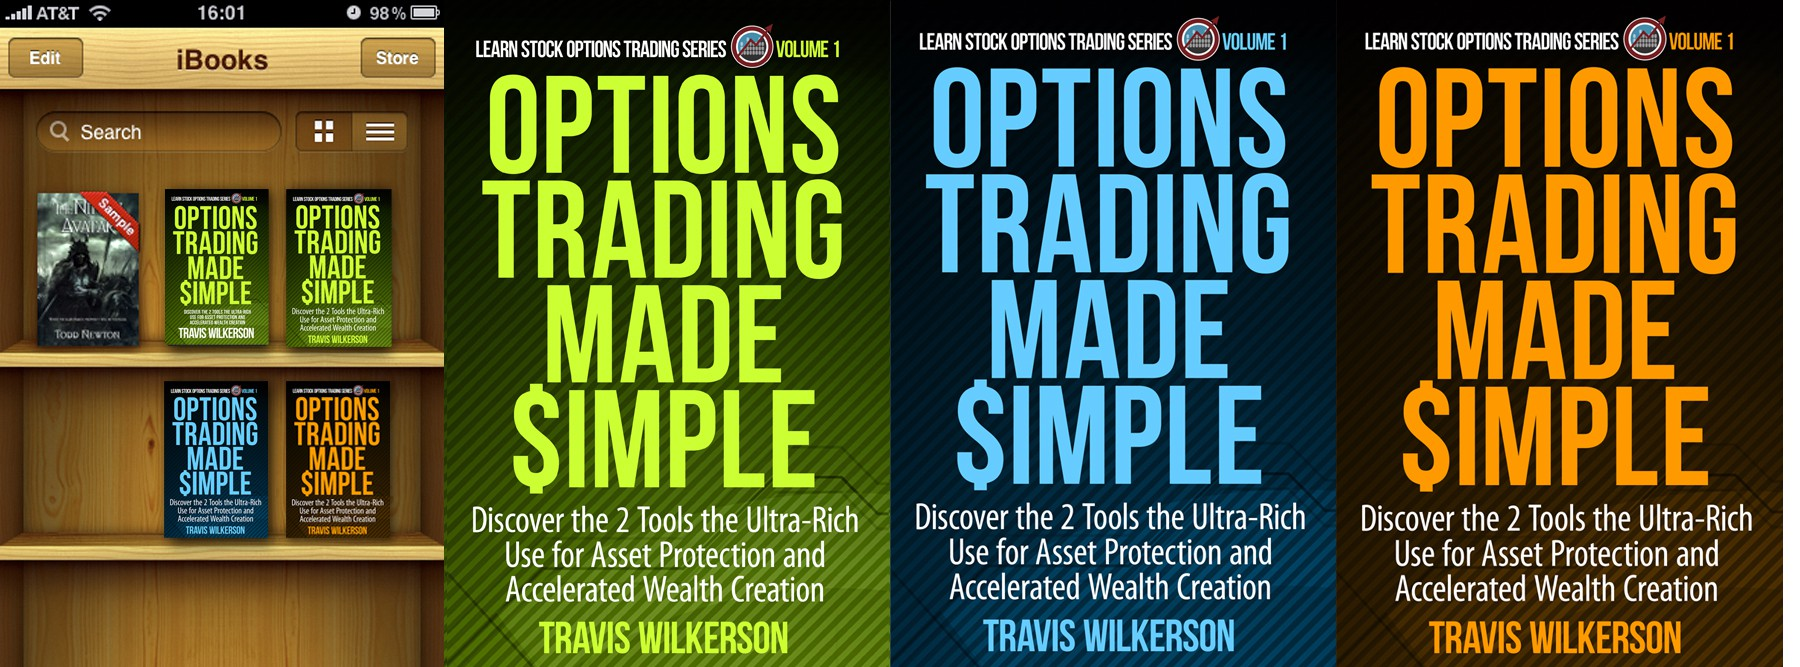 Help The Options Trading Group with a new Kindle eBook Cover